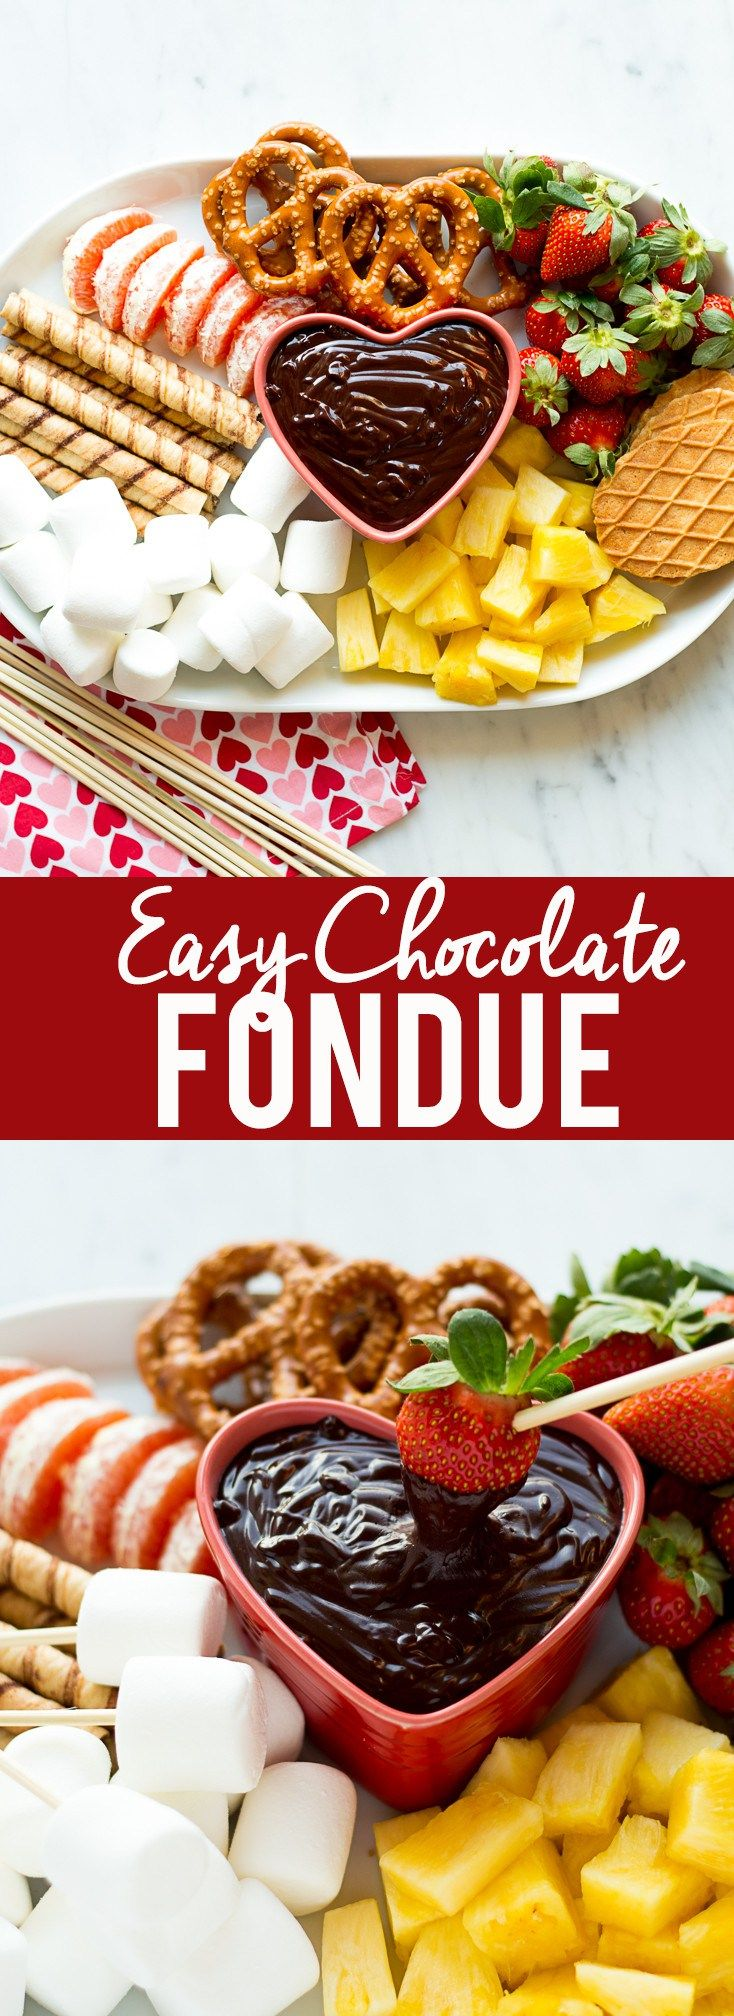 This easy chocolate fondue is a fun dessert for a romantic valentine's day dinner or party. It is rich and chocolatey and doesn't even require a fondue pot!